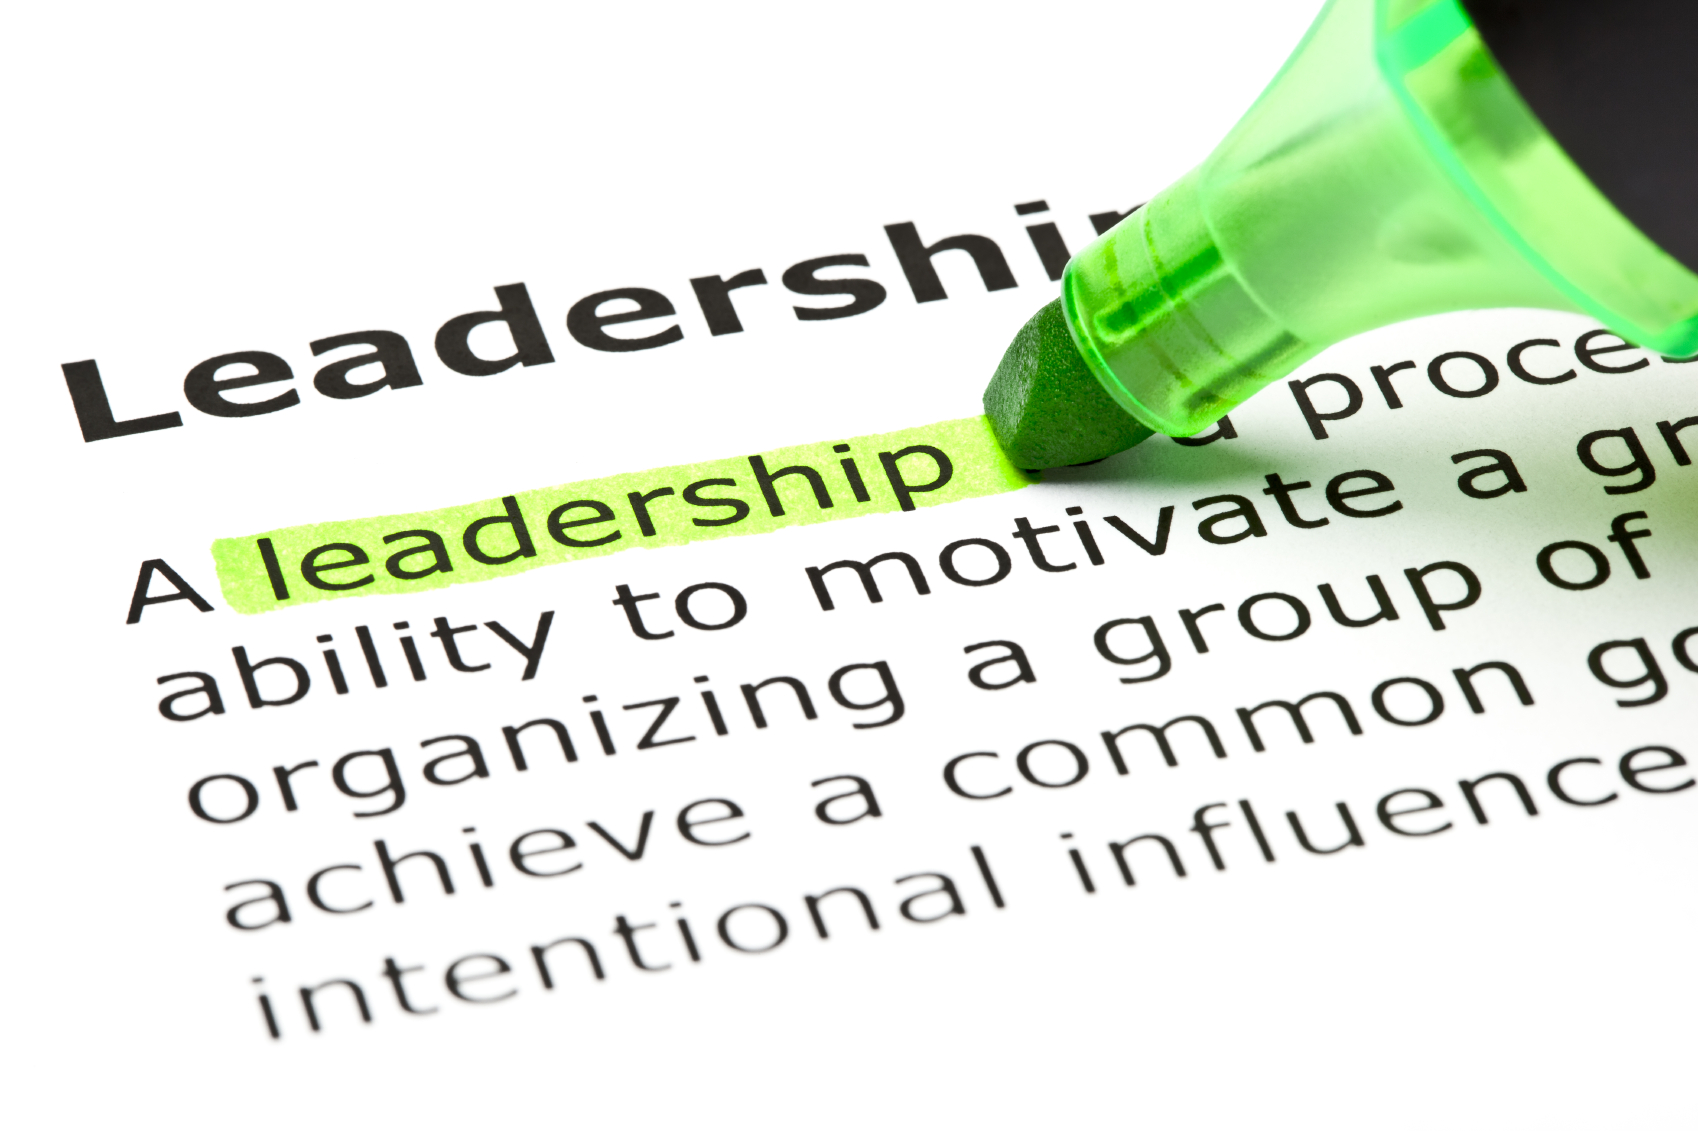 2mm to sales mastery leadership